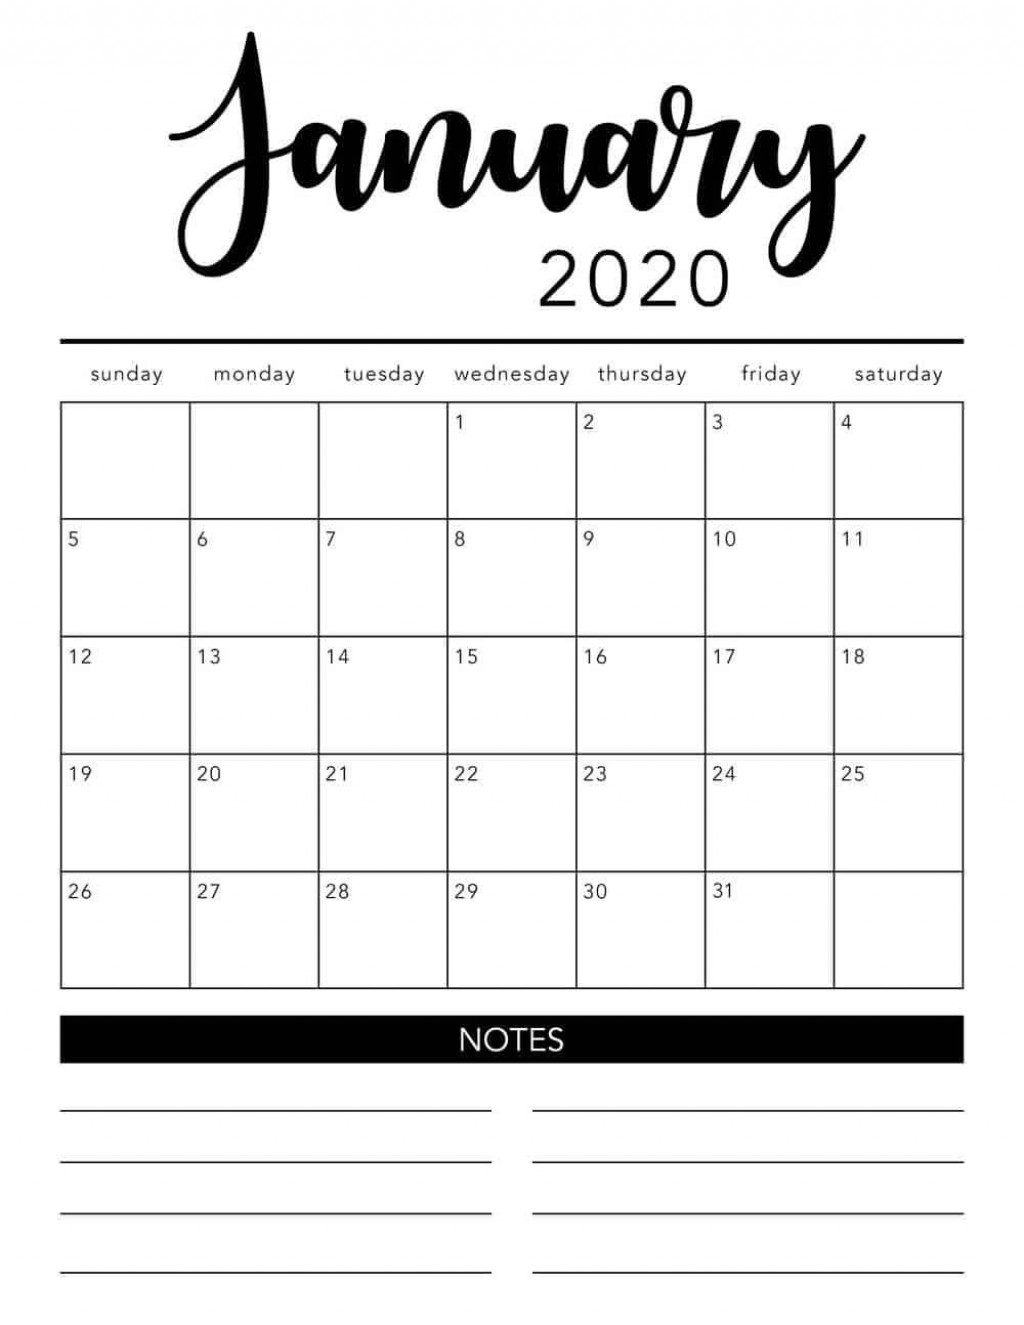 003 Magnificent Monthly Calendar Template 2020 Inspiration  Editable Free Word Excel MayLarge